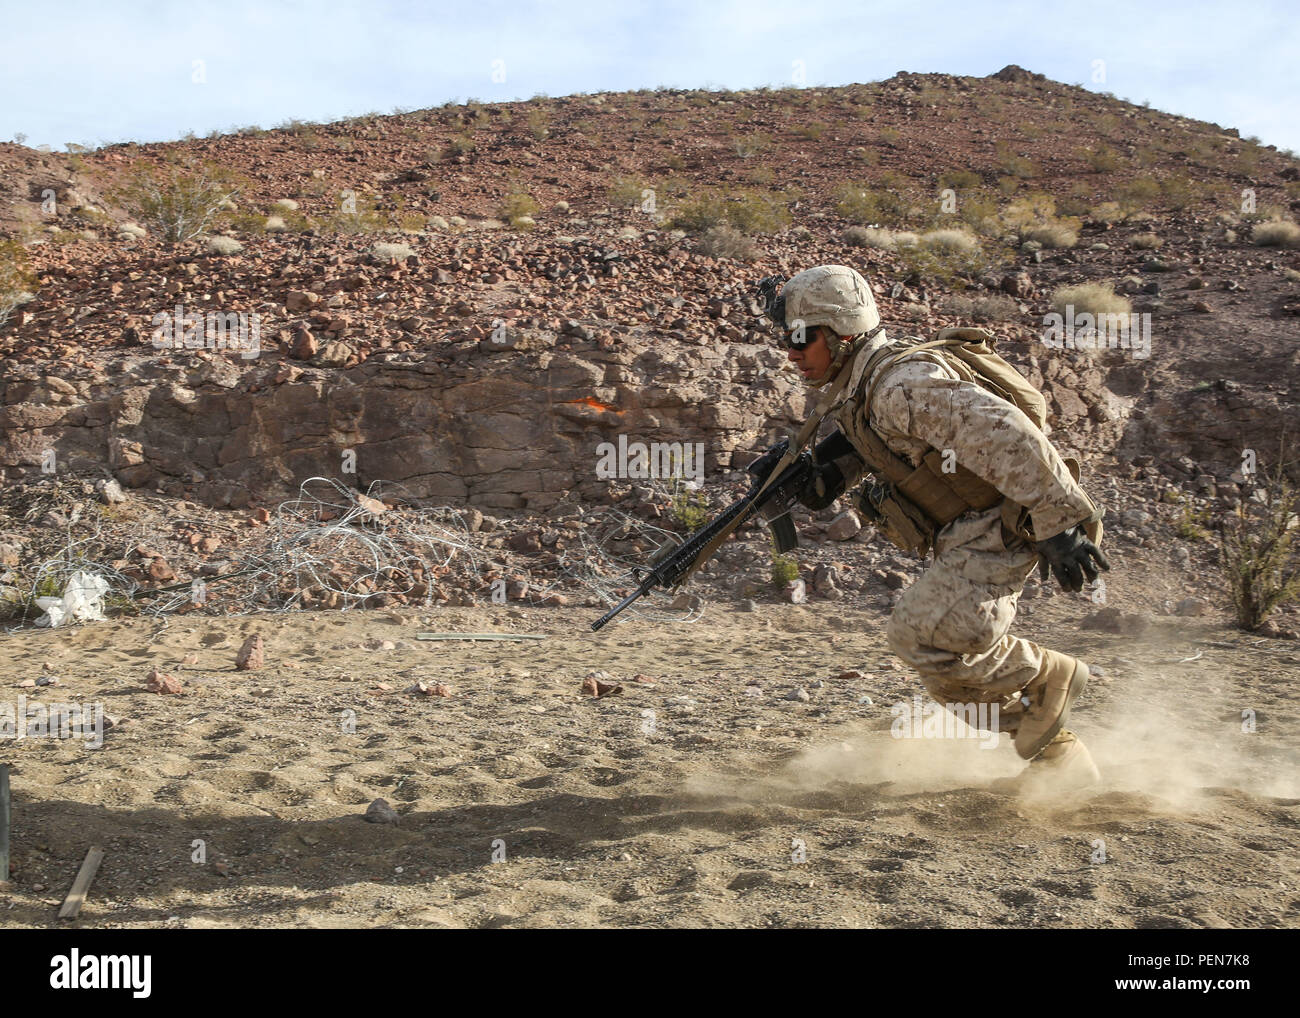 A Marine darts for cover during a company supported, live-fire assault during a Marine Corps Combat Readiness Evaluation at Marine Corps Air Ground Combat Center Twentynine Palms, Calif., Dec. 7, 2015. The purpose of a MCCRE is to evaluate Marines' collective performance in specific mission requirements that will prepare them for their upcoming deployment rotation.The Marine is with 2nd Battalion, 7th Marine Regiment, 1st Marine Division. (U.S. Marine Corps photo by Lance Cpl. Devan K. Gowans) - Stock Image